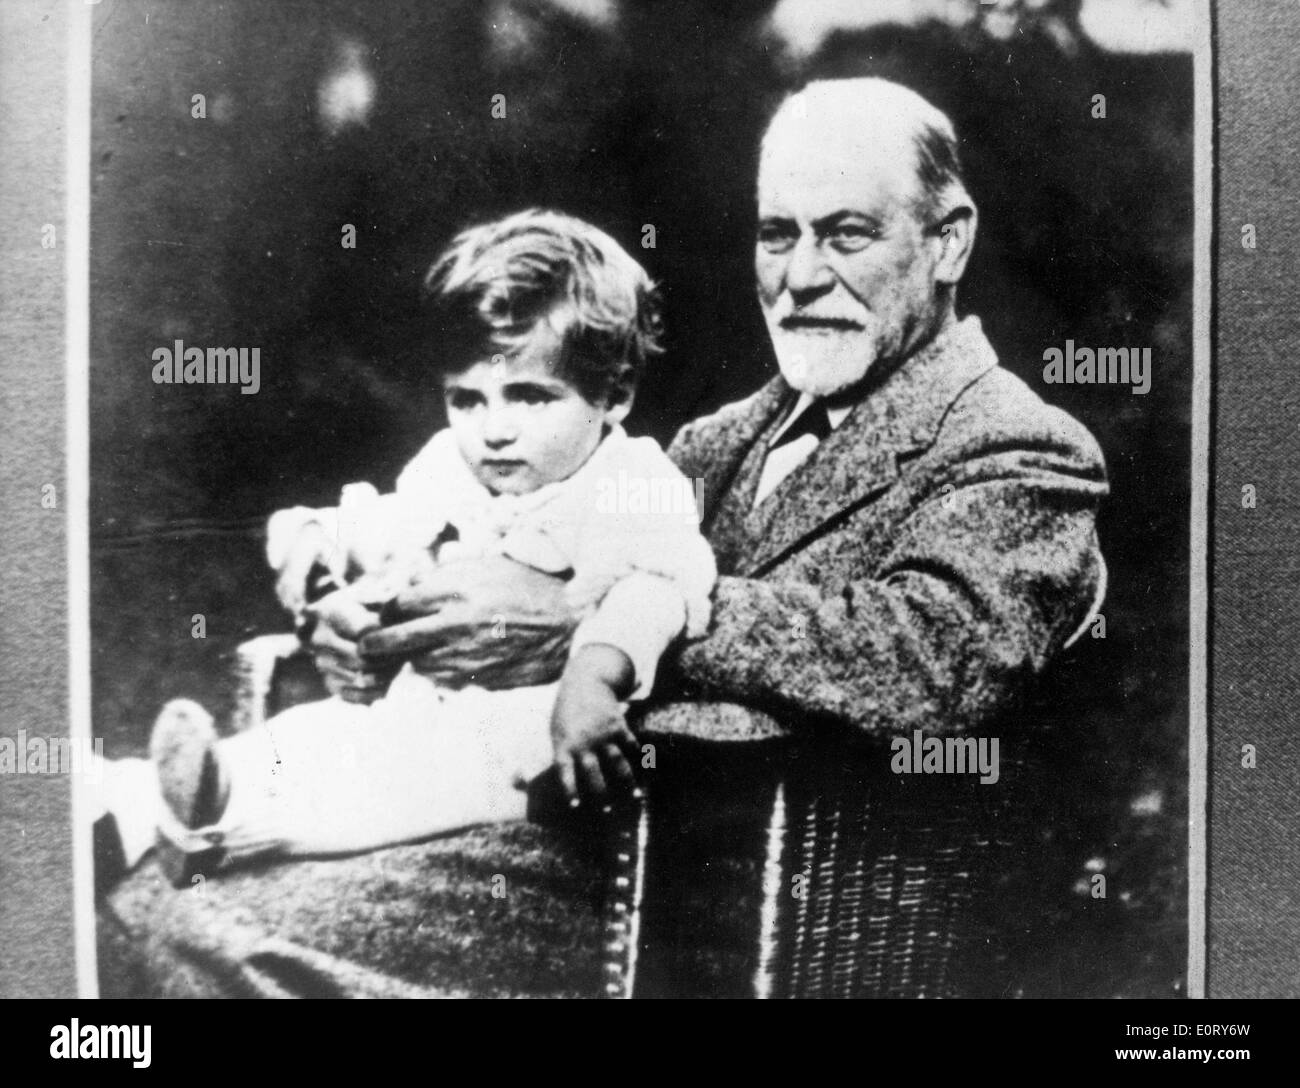 Portrait of neurologist Sigmund Freud with his child - Stock Image